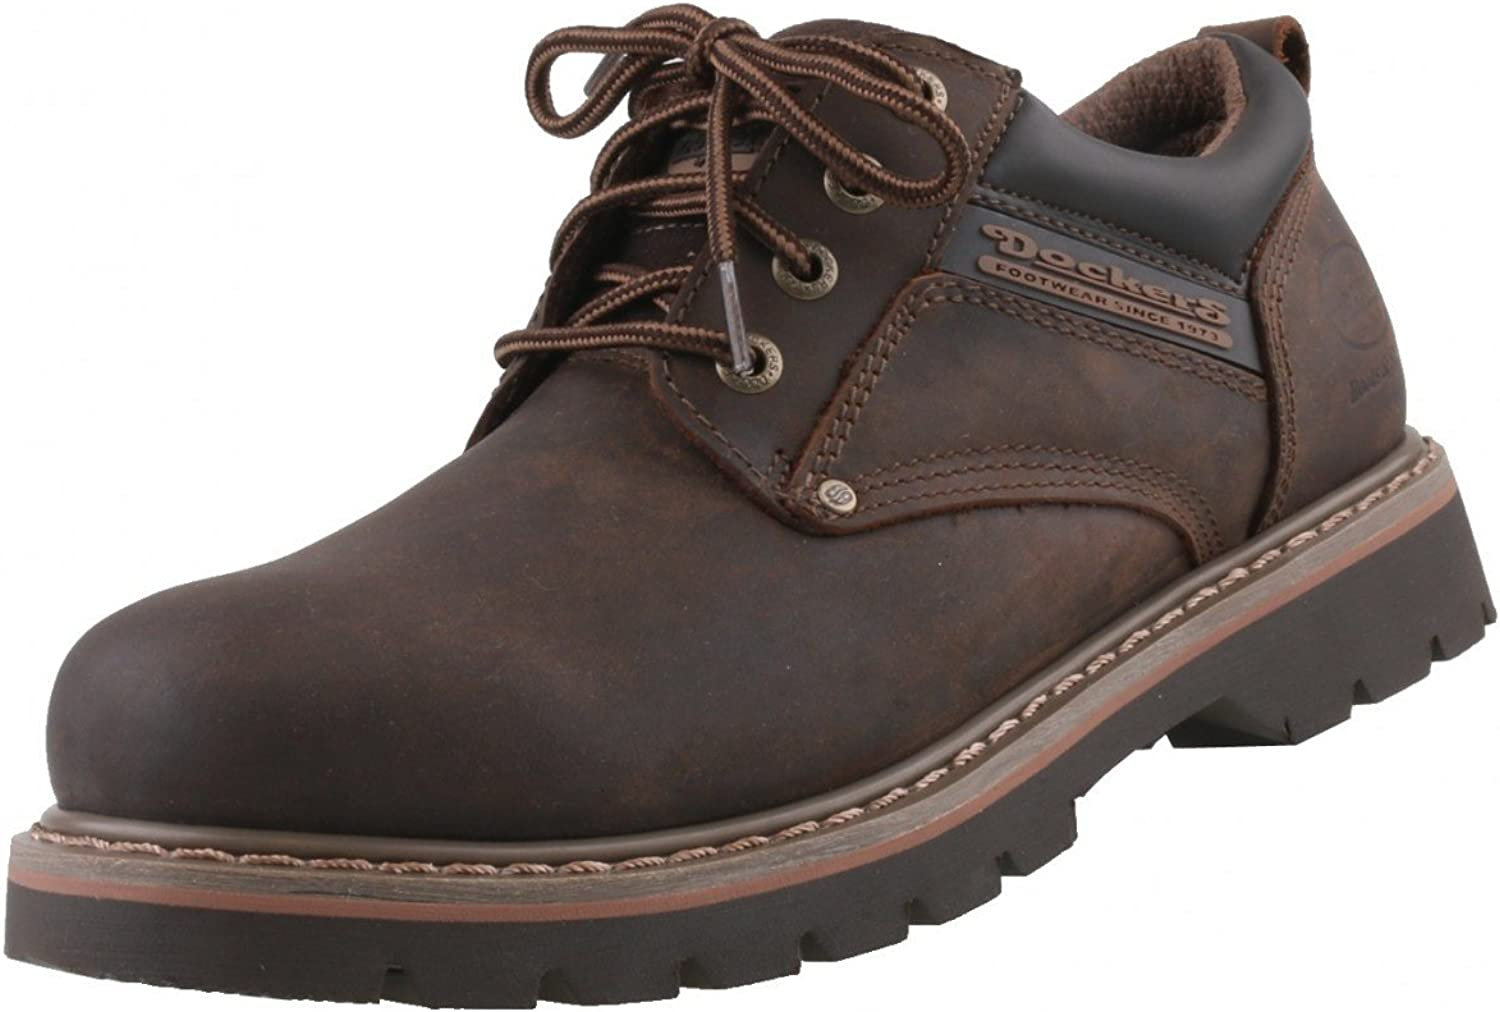 Dockers by Gerli Men's Lace-Up Flats, brown - brown oscuro, 9 UK